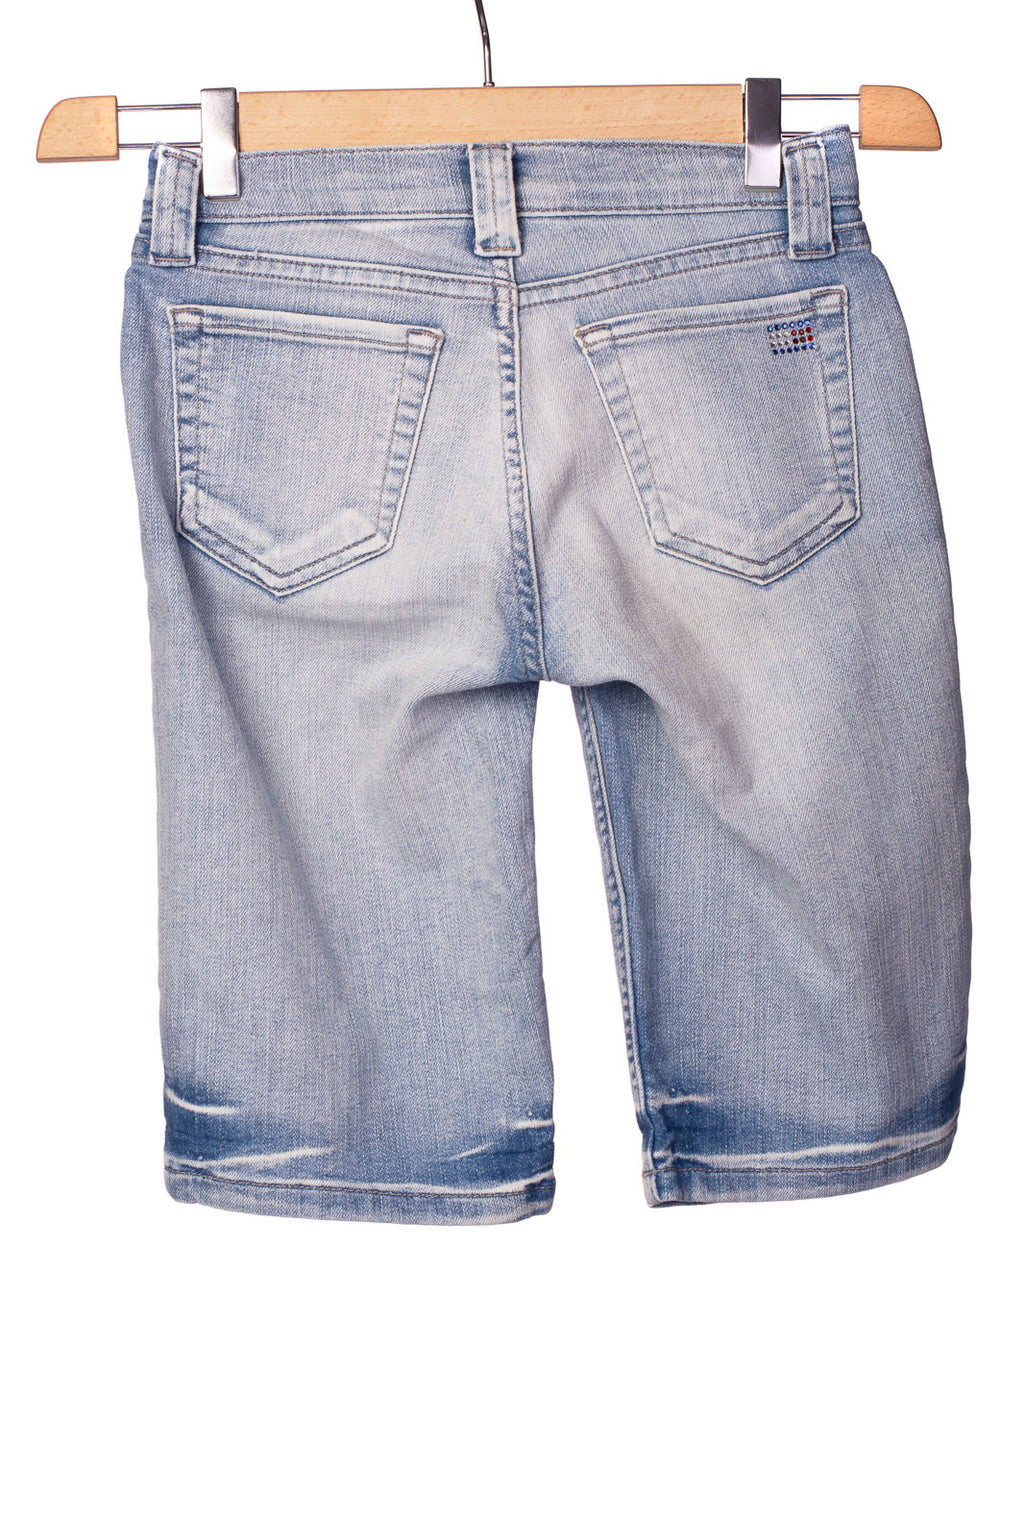 RRP €105 TOMMY HILFIGER Denim Shorts Size 2 / XS Stretch Garment Dye Worn Look